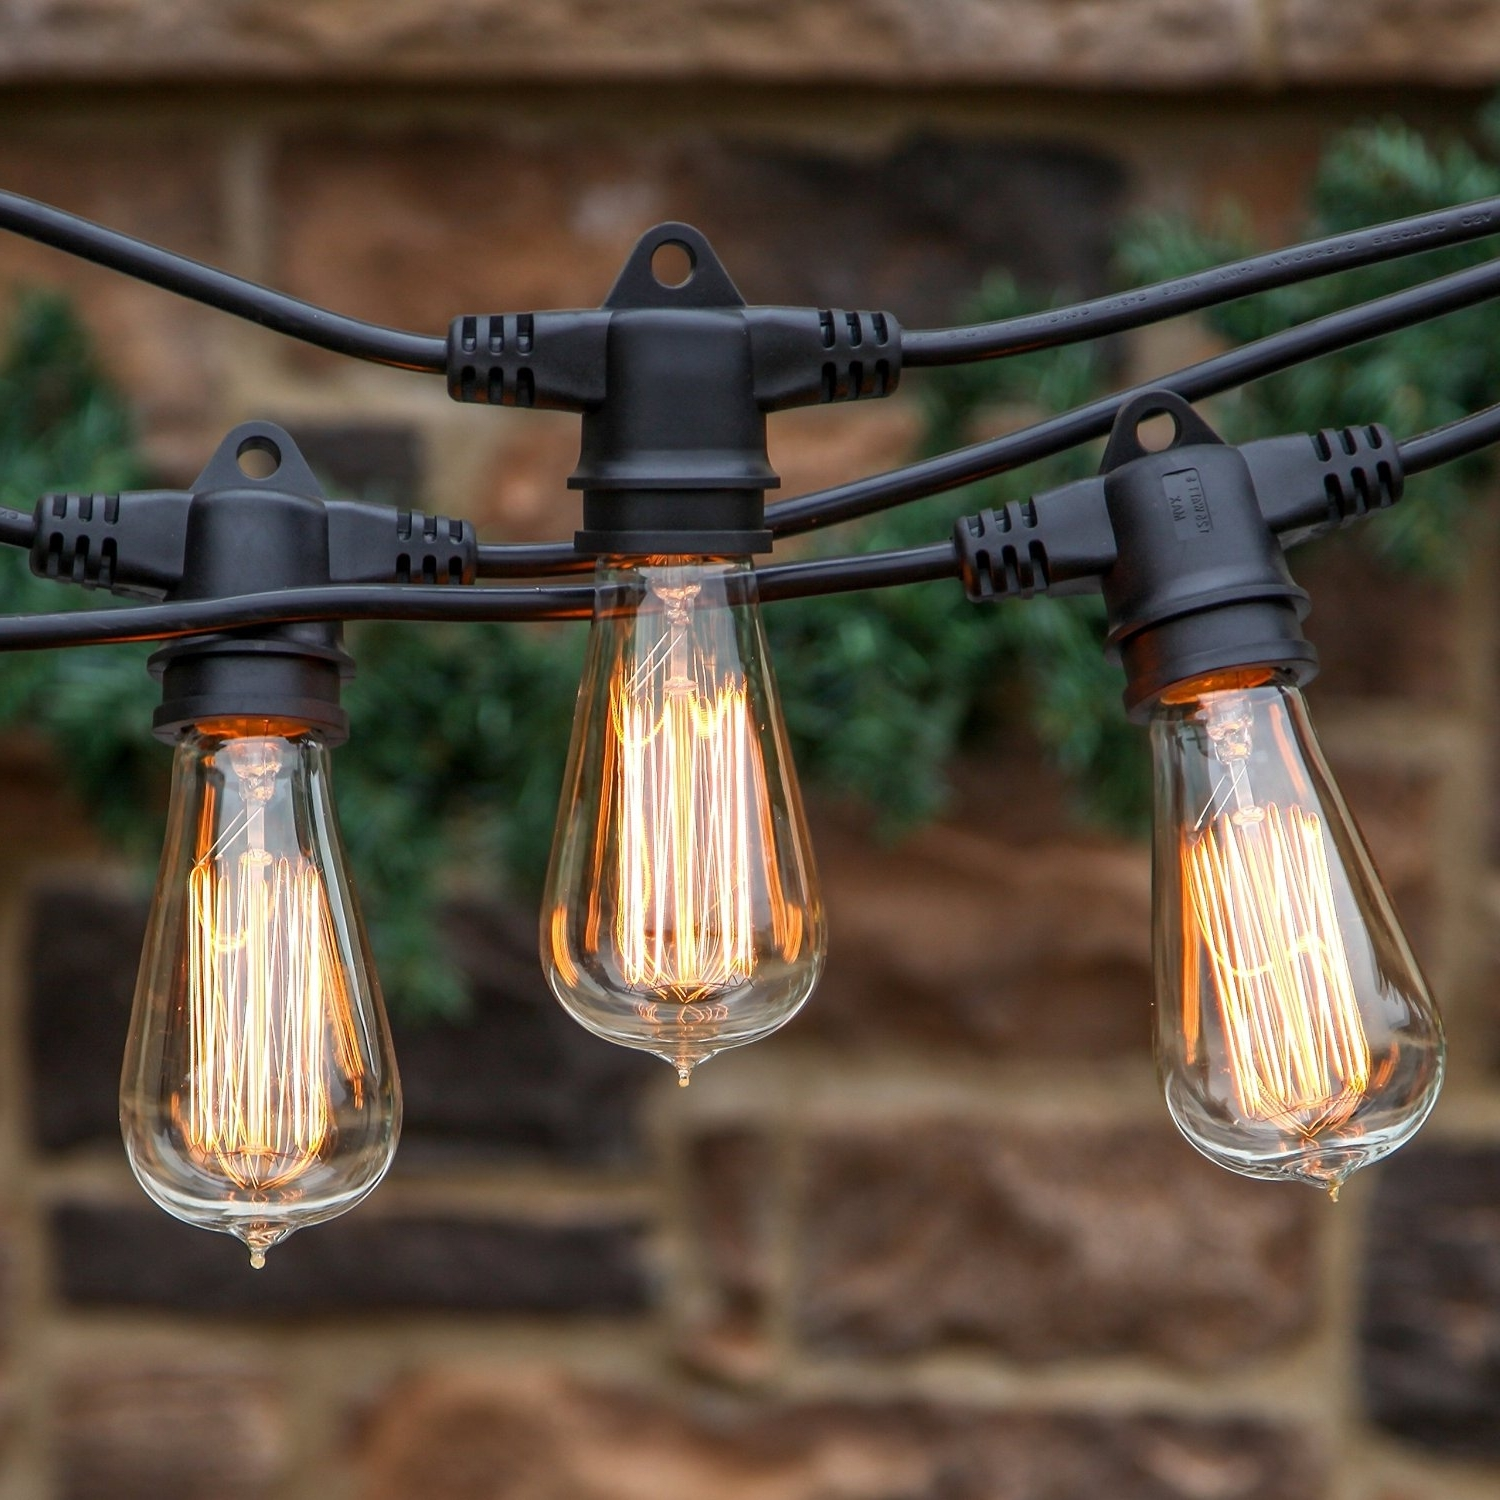 Best And Newest Outdoor Hanging Lights Bulbs Intended For Rustic Landscape Light Bulbs : Landscape Light Bulbs: Spectacular (View 15 of 20)